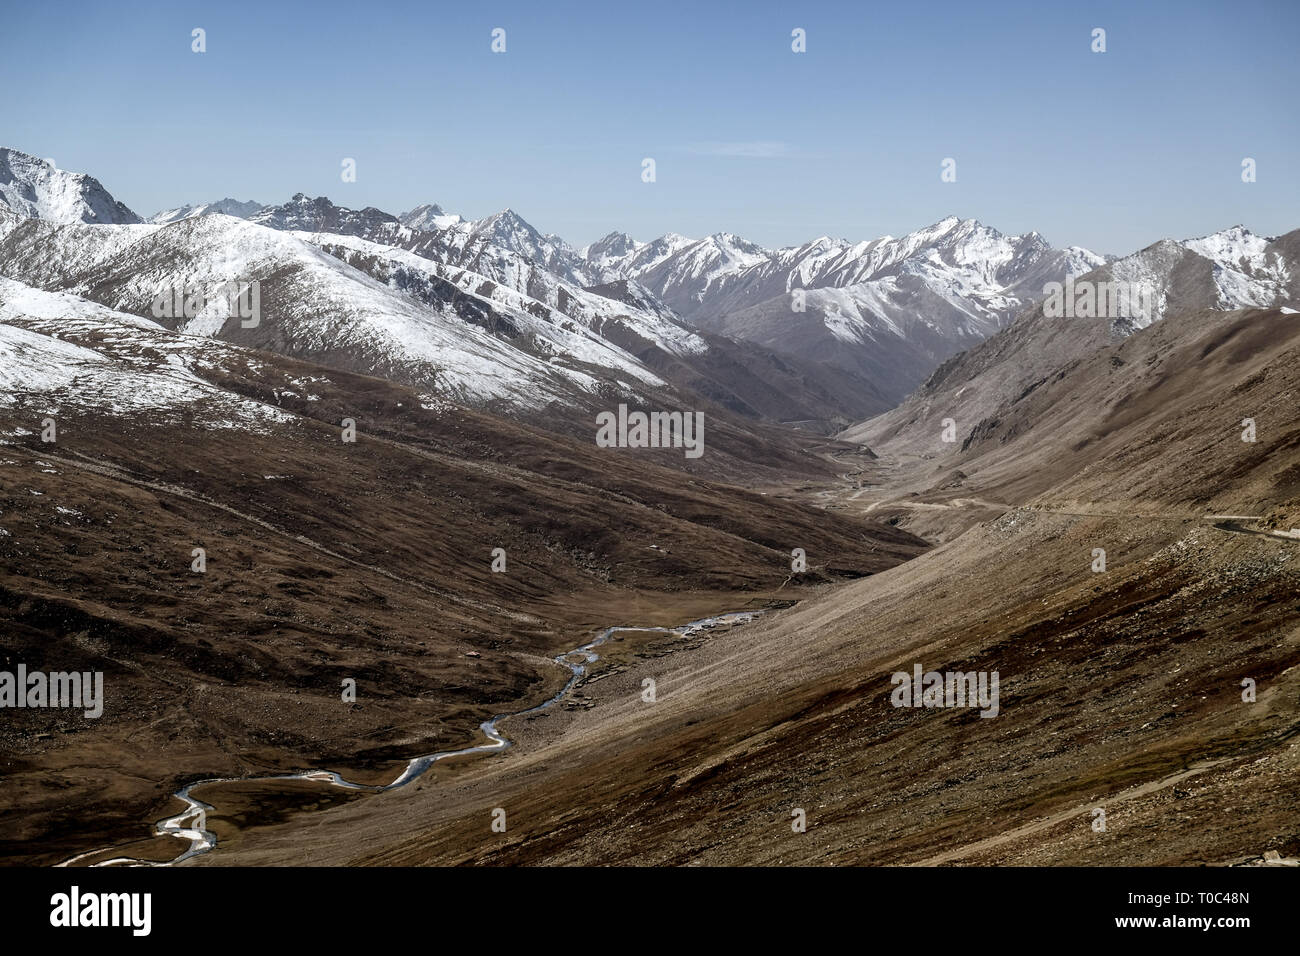 Landscape of snow capped mountain range. A view from Babusar Pass. Khyber Pakhtunkhwa, Gilgit Baltistan, Pakistan - Stock Image